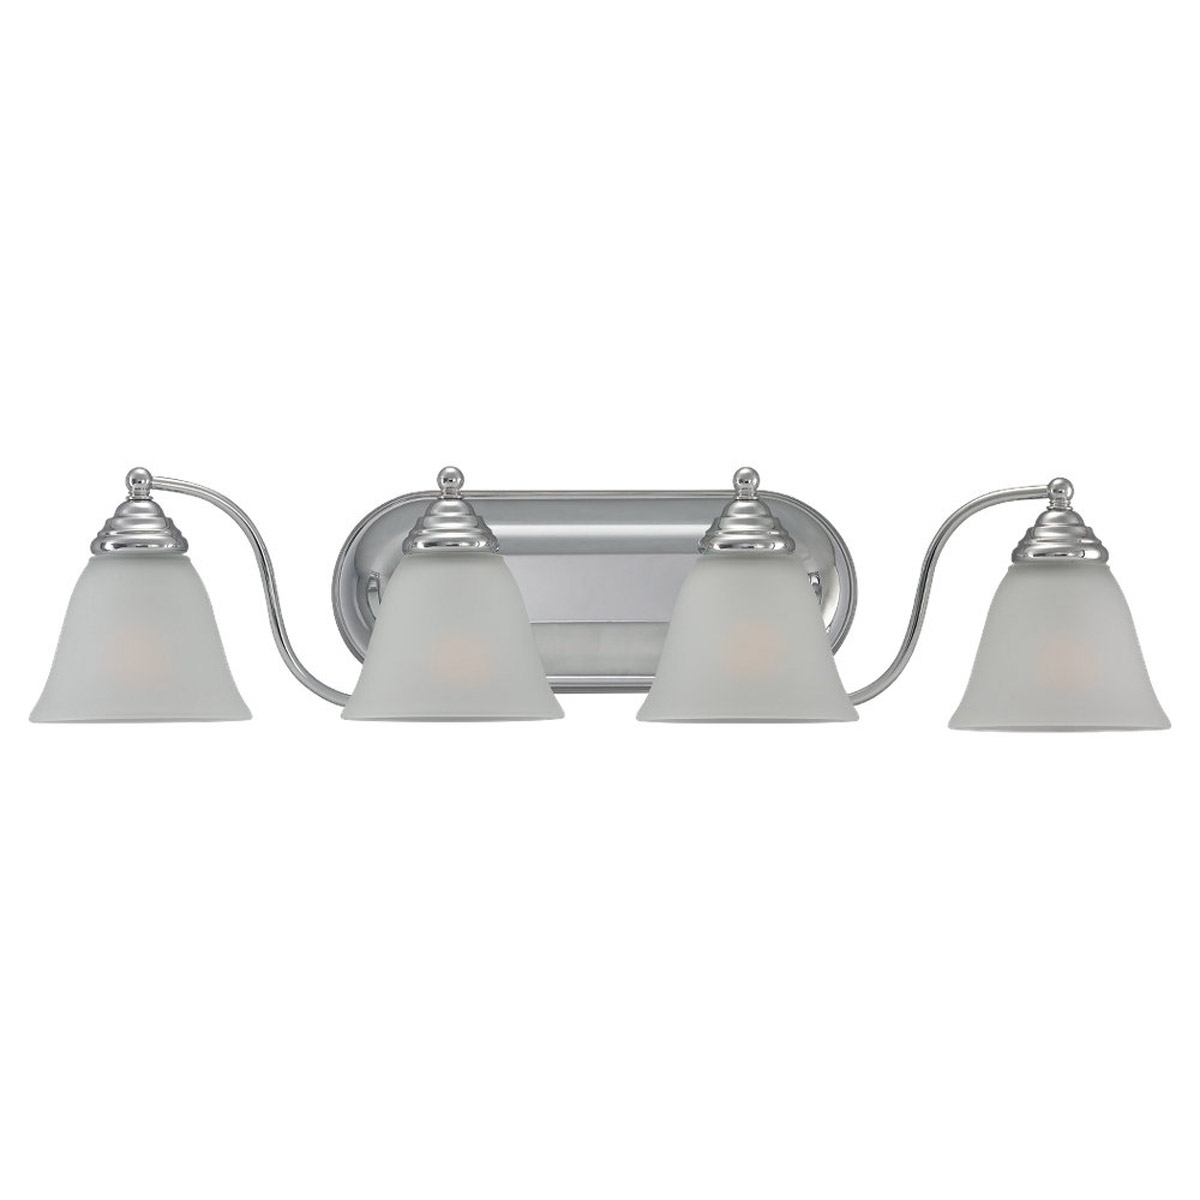 Sea Gull Lighting Albany 4 Light Wall / Bath / Vanity in Chrome 44578-05 photo